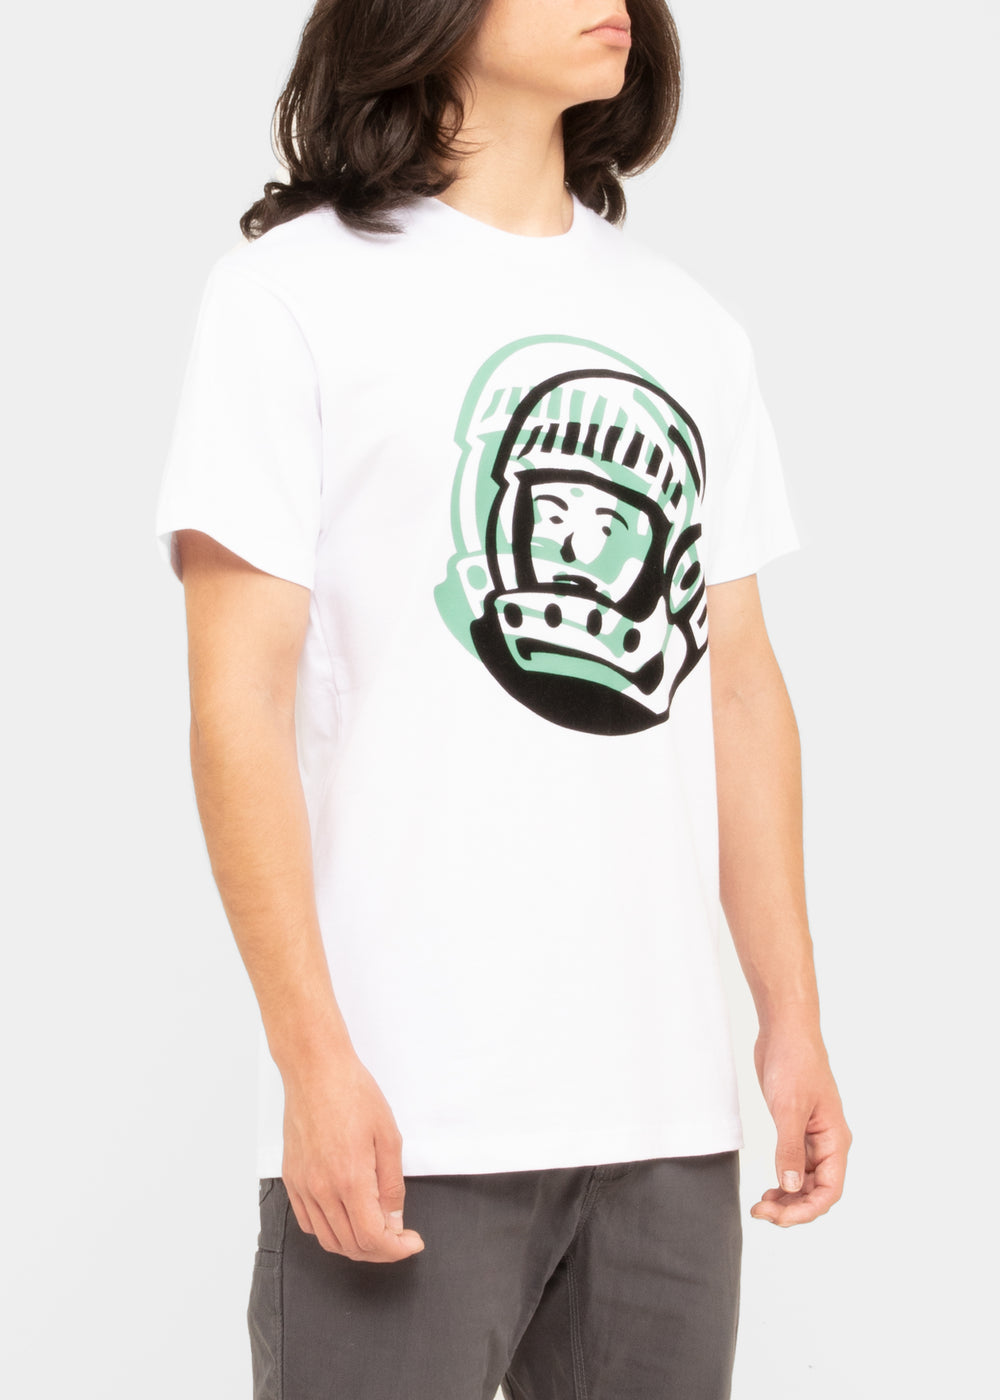 billionaire-boys-club-doubleed-ss-tee-891-7212-wht-wht-2